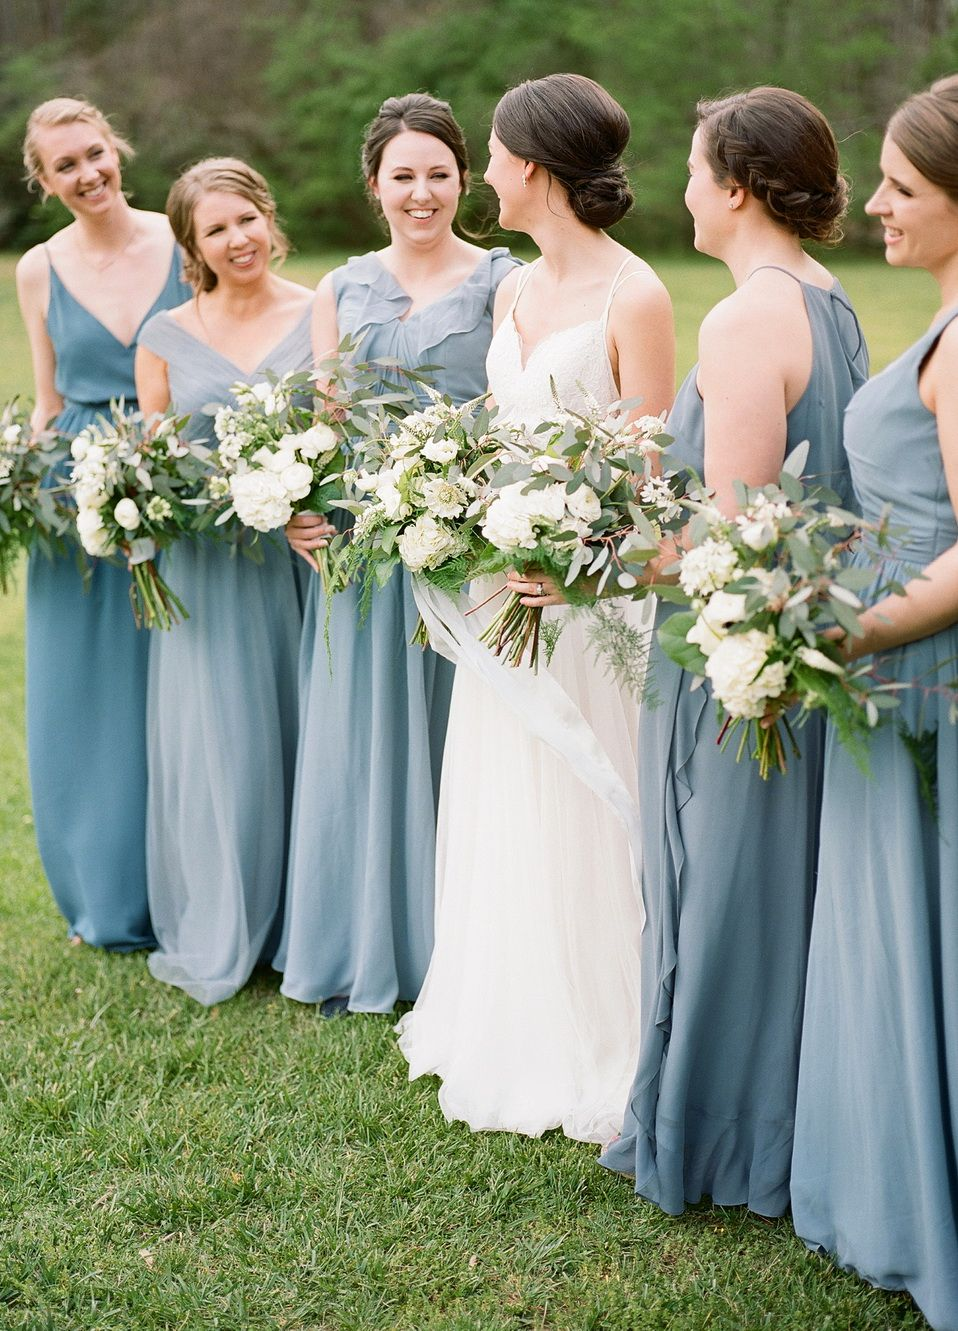 Mix And Match Dusty Blue Bridesmaid Dresses From Tulle Chantilly Collection Photo Bridesmaid Mismatched Bridesmaid Dresses Blue Blue Bridesmaid Dresses Short